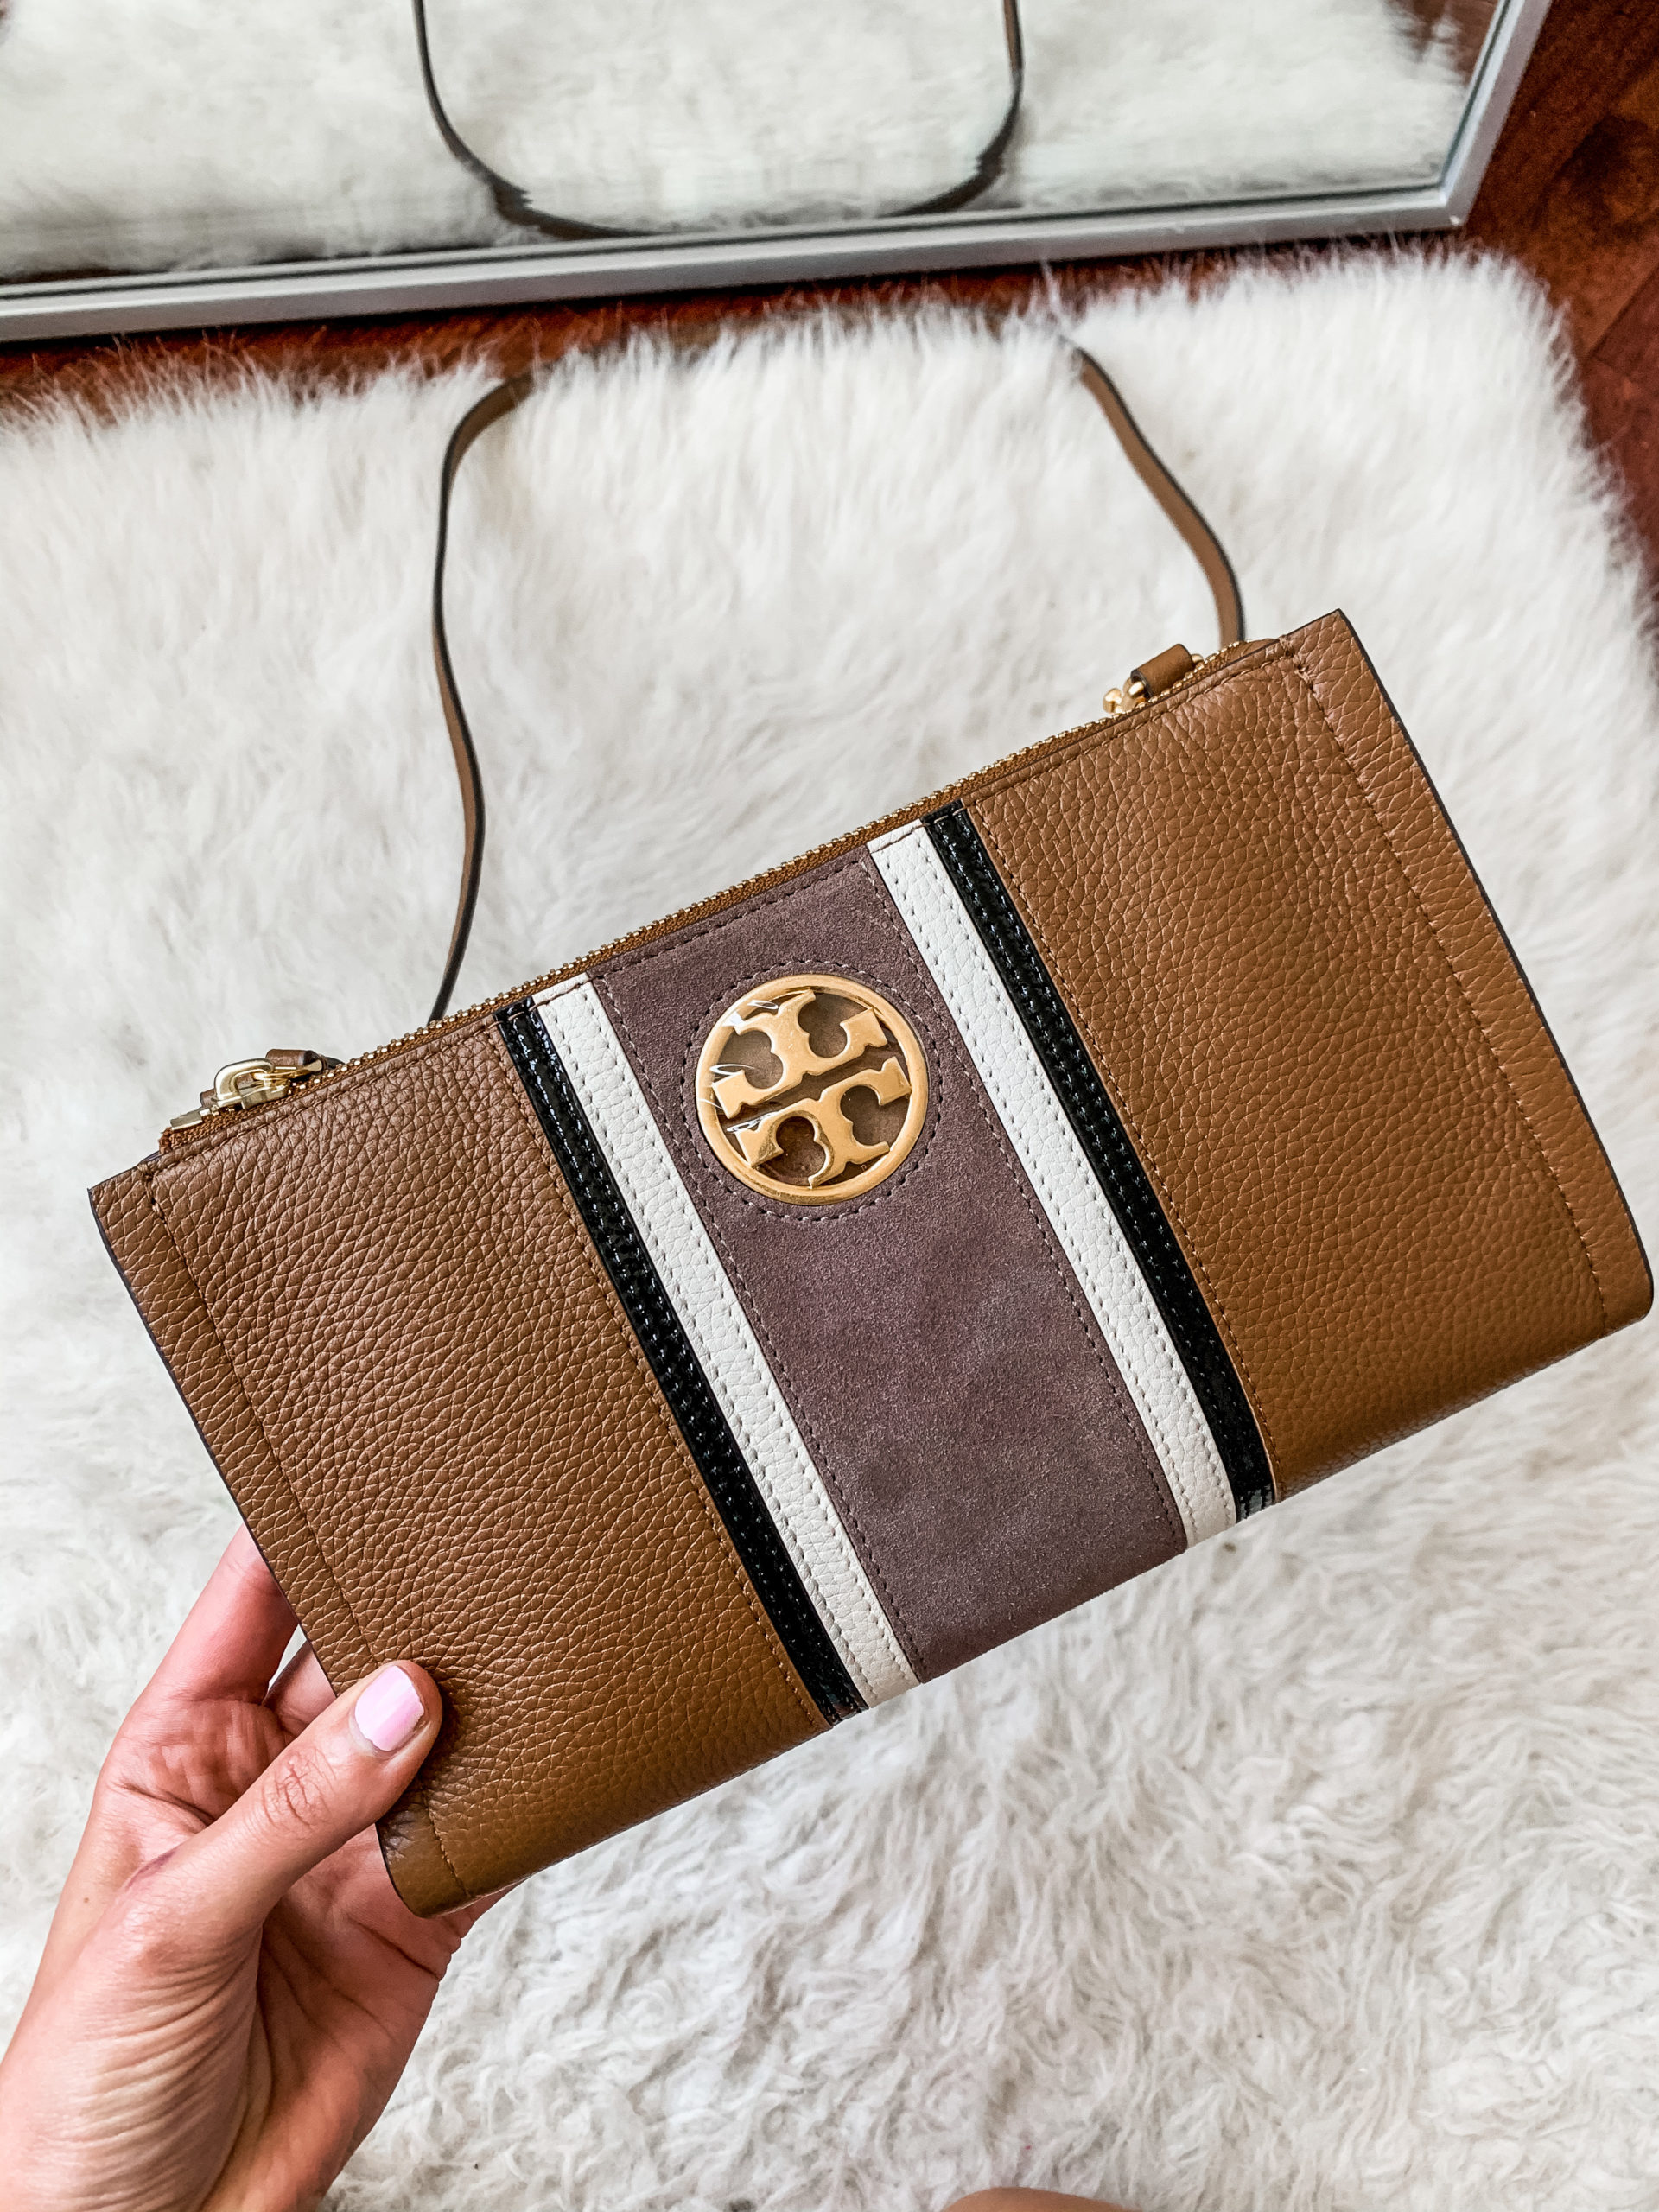 Tory Burch crossbody - NORDSTROM ANNIVERSARY SALE - Try-on Haul with Hits AND MISSES on Coming Up Roses